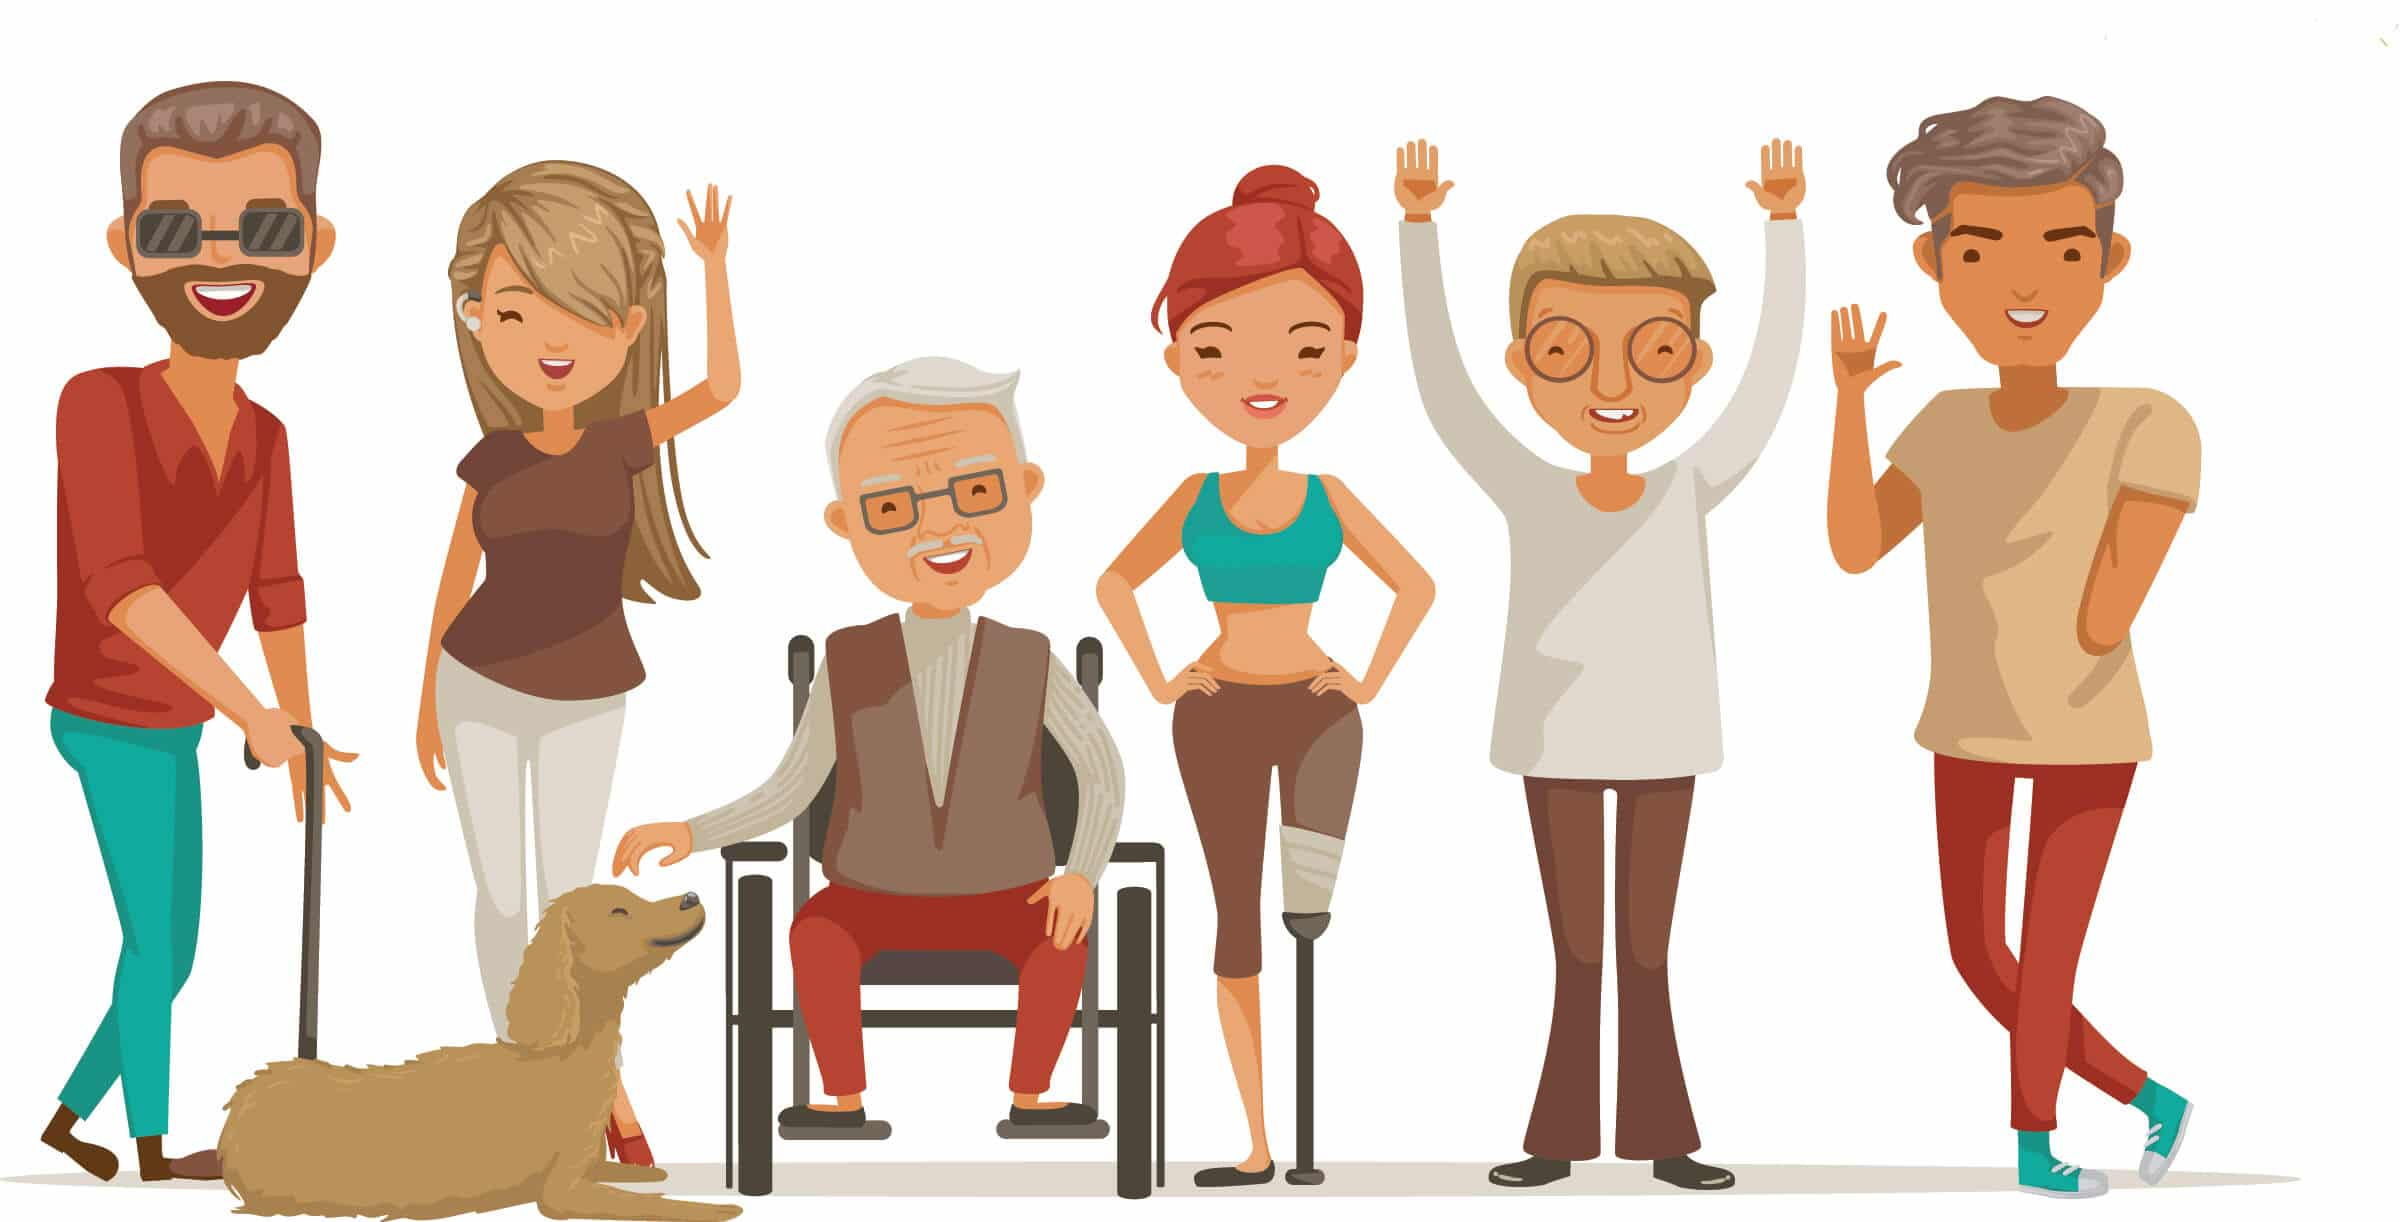 Illustration of people with disabilities